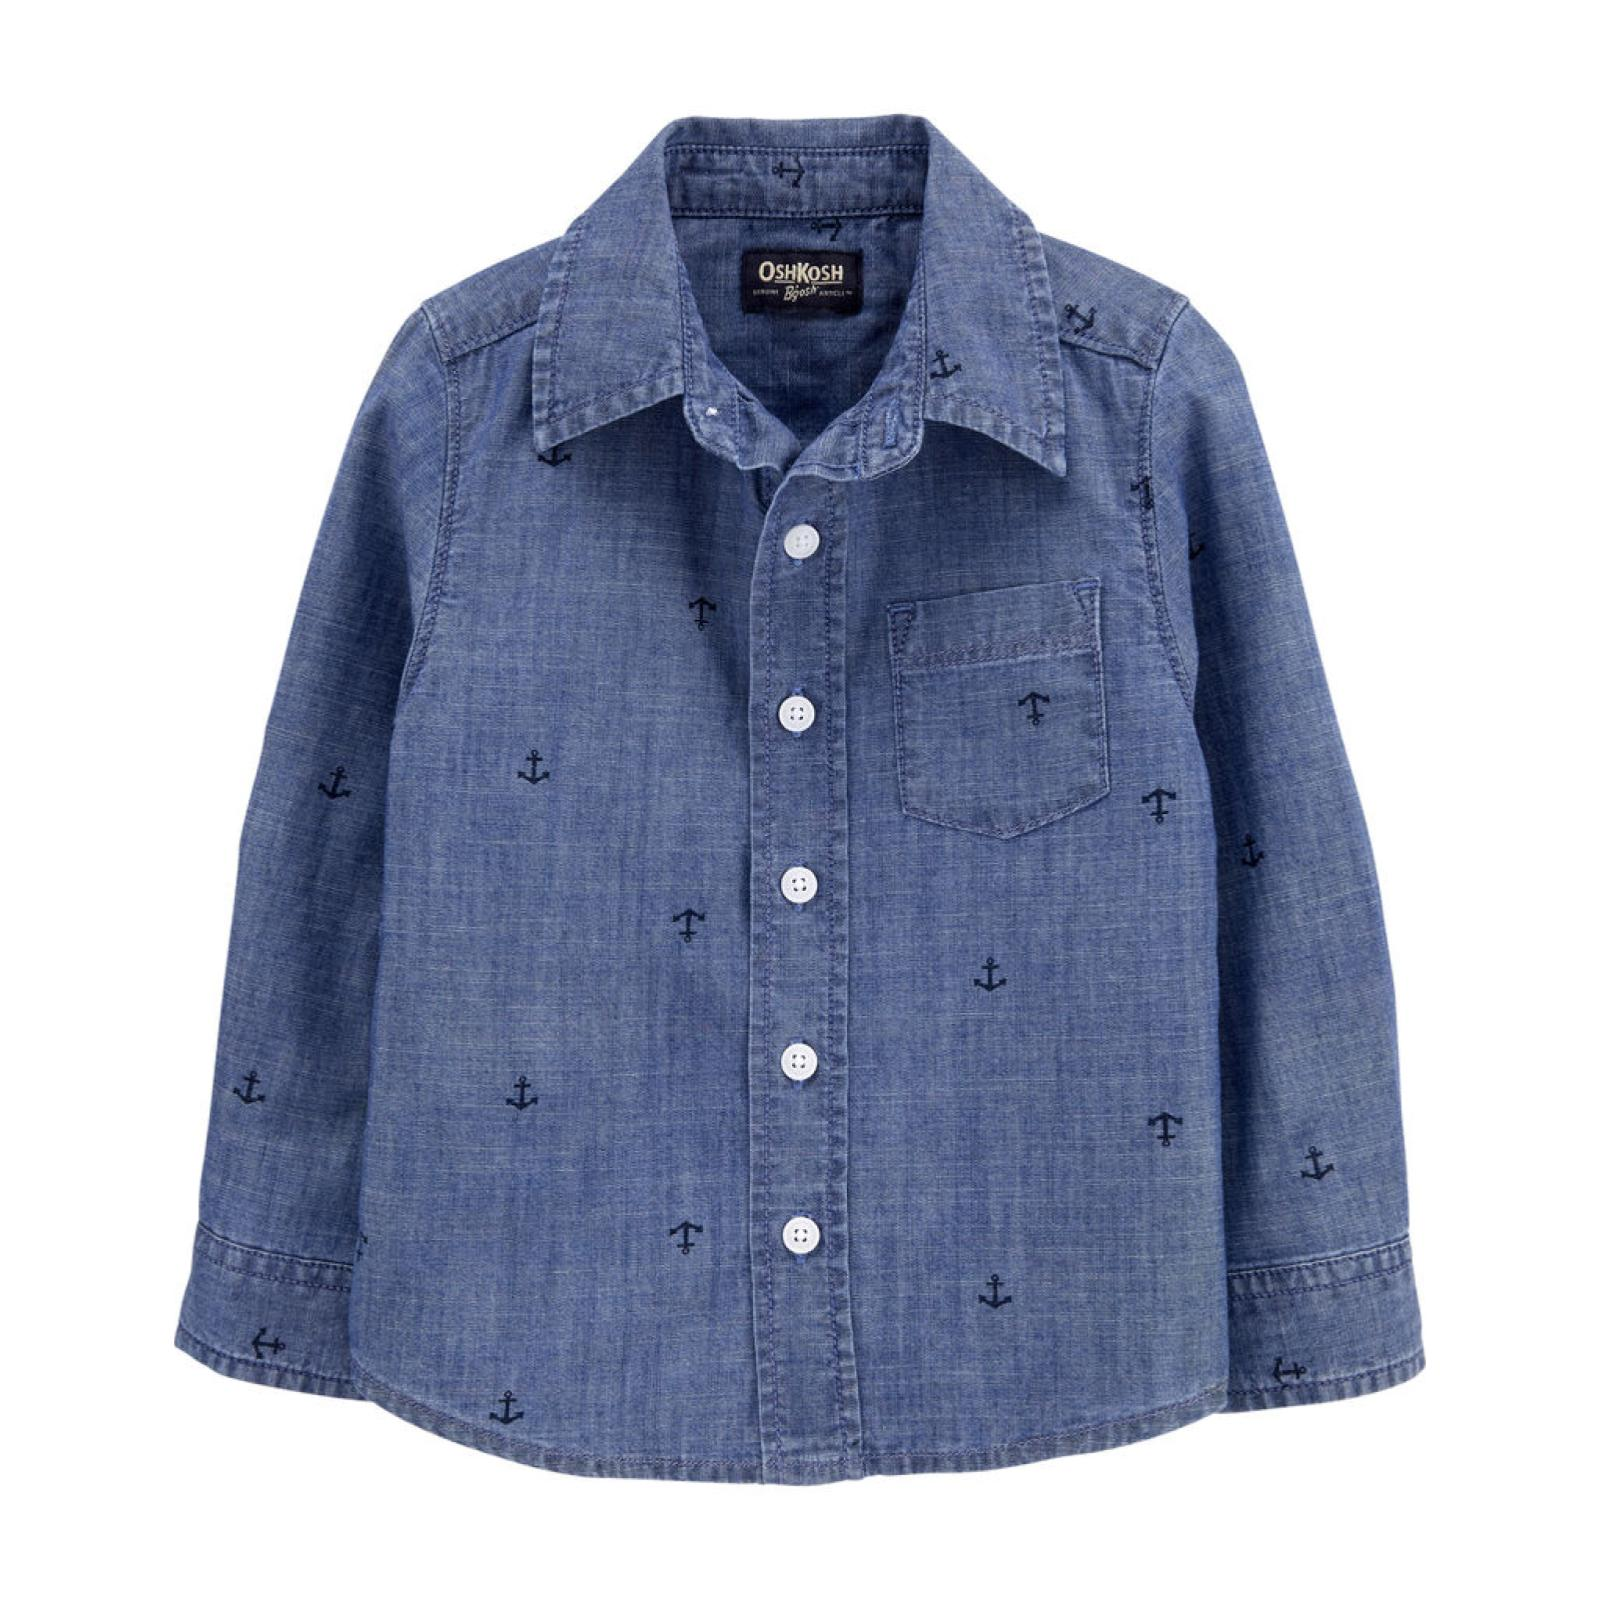 Camisa jeans ancoras